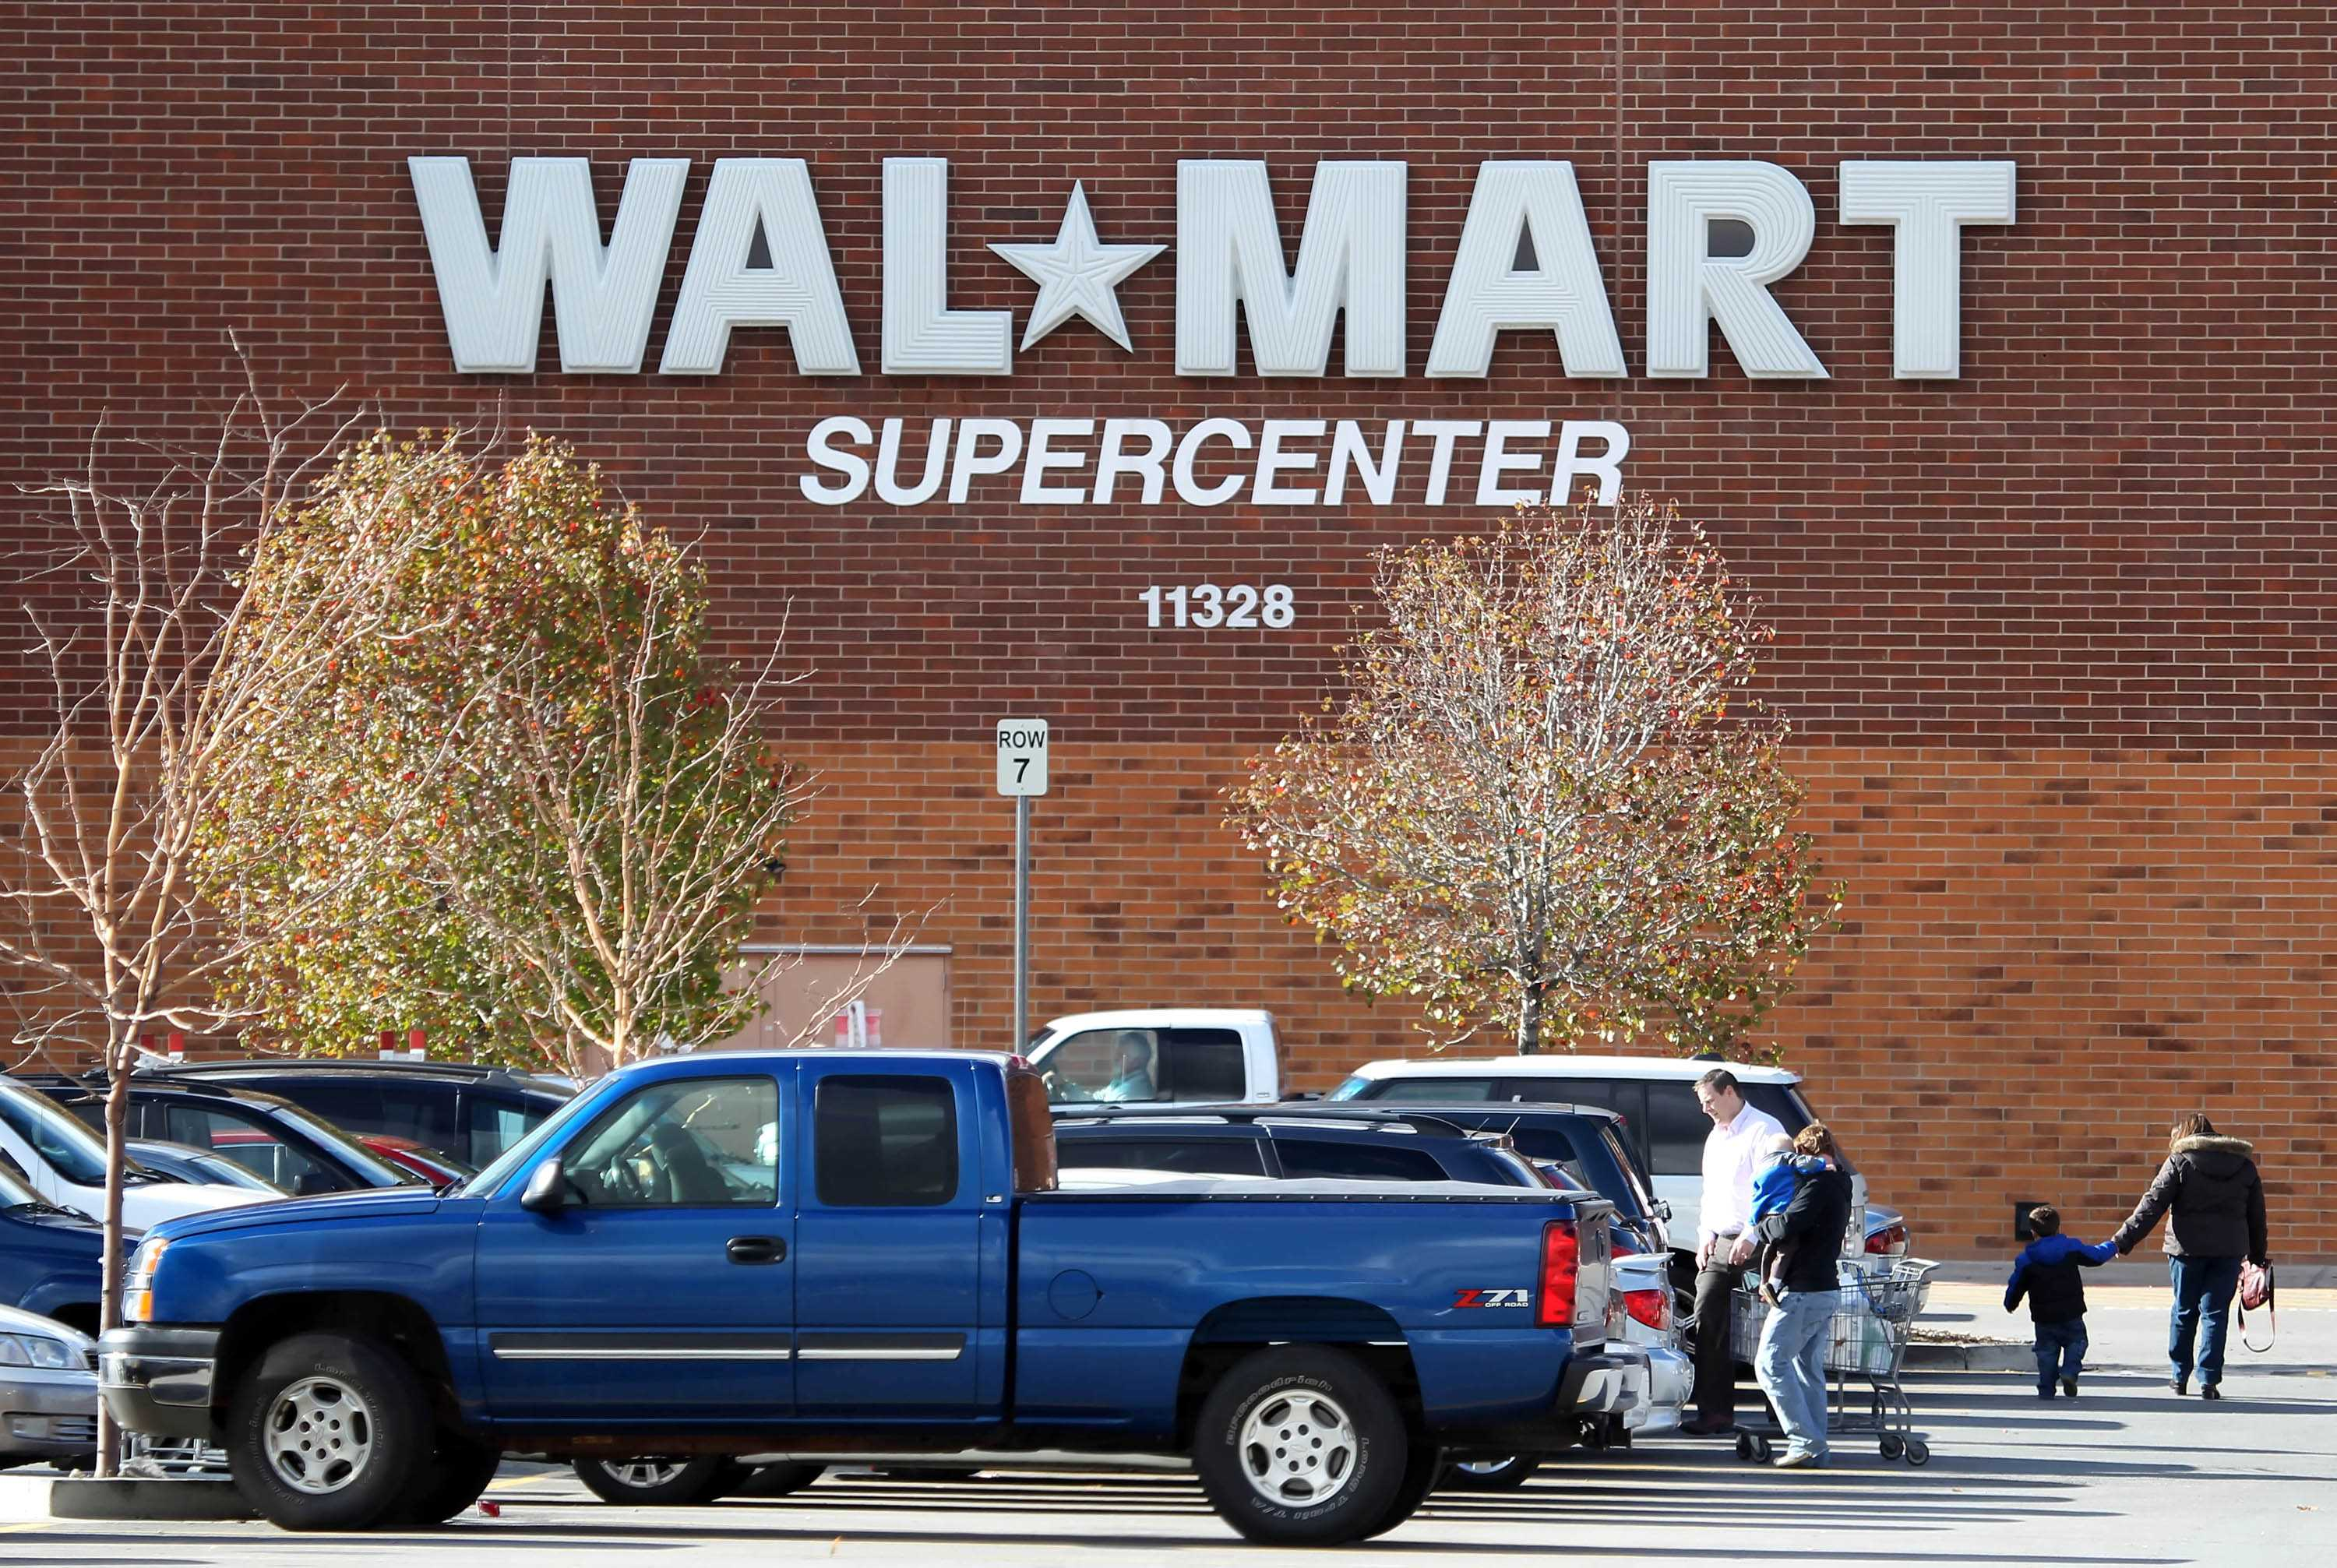 Wal-Mart faces scandal over alleged bribery in Mexican unit